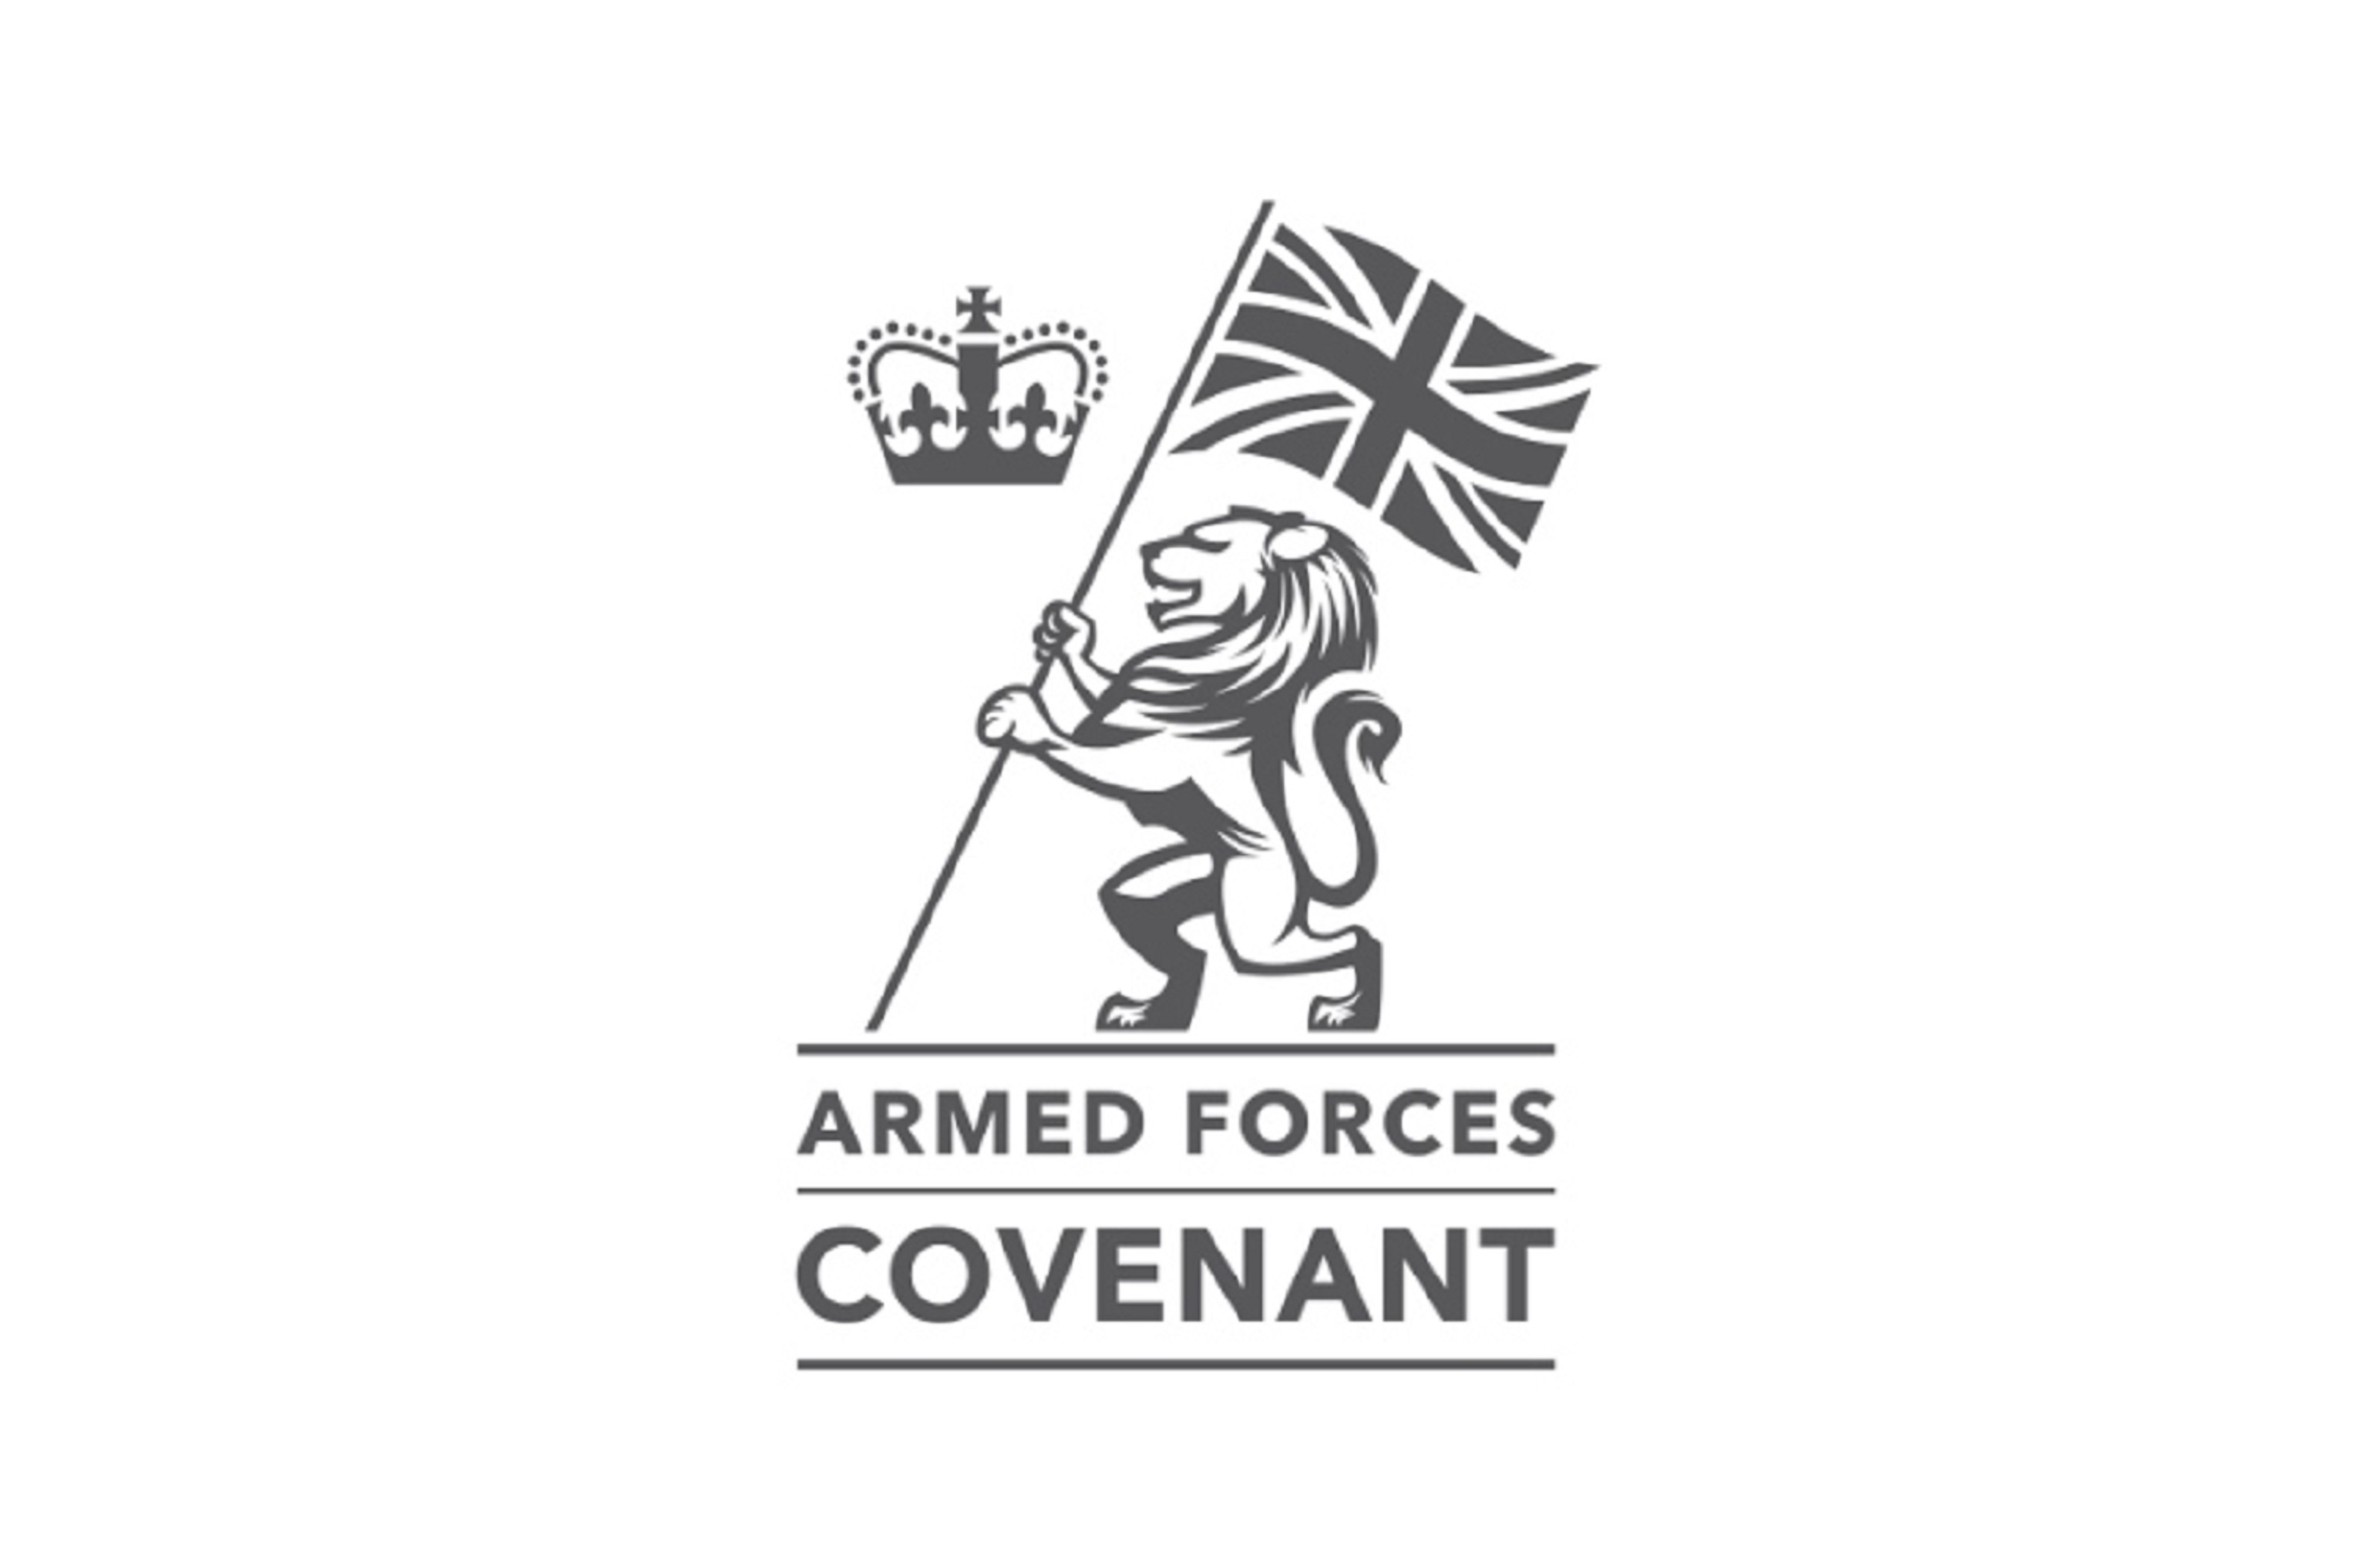 Riverside signs up to support the Armed Forces